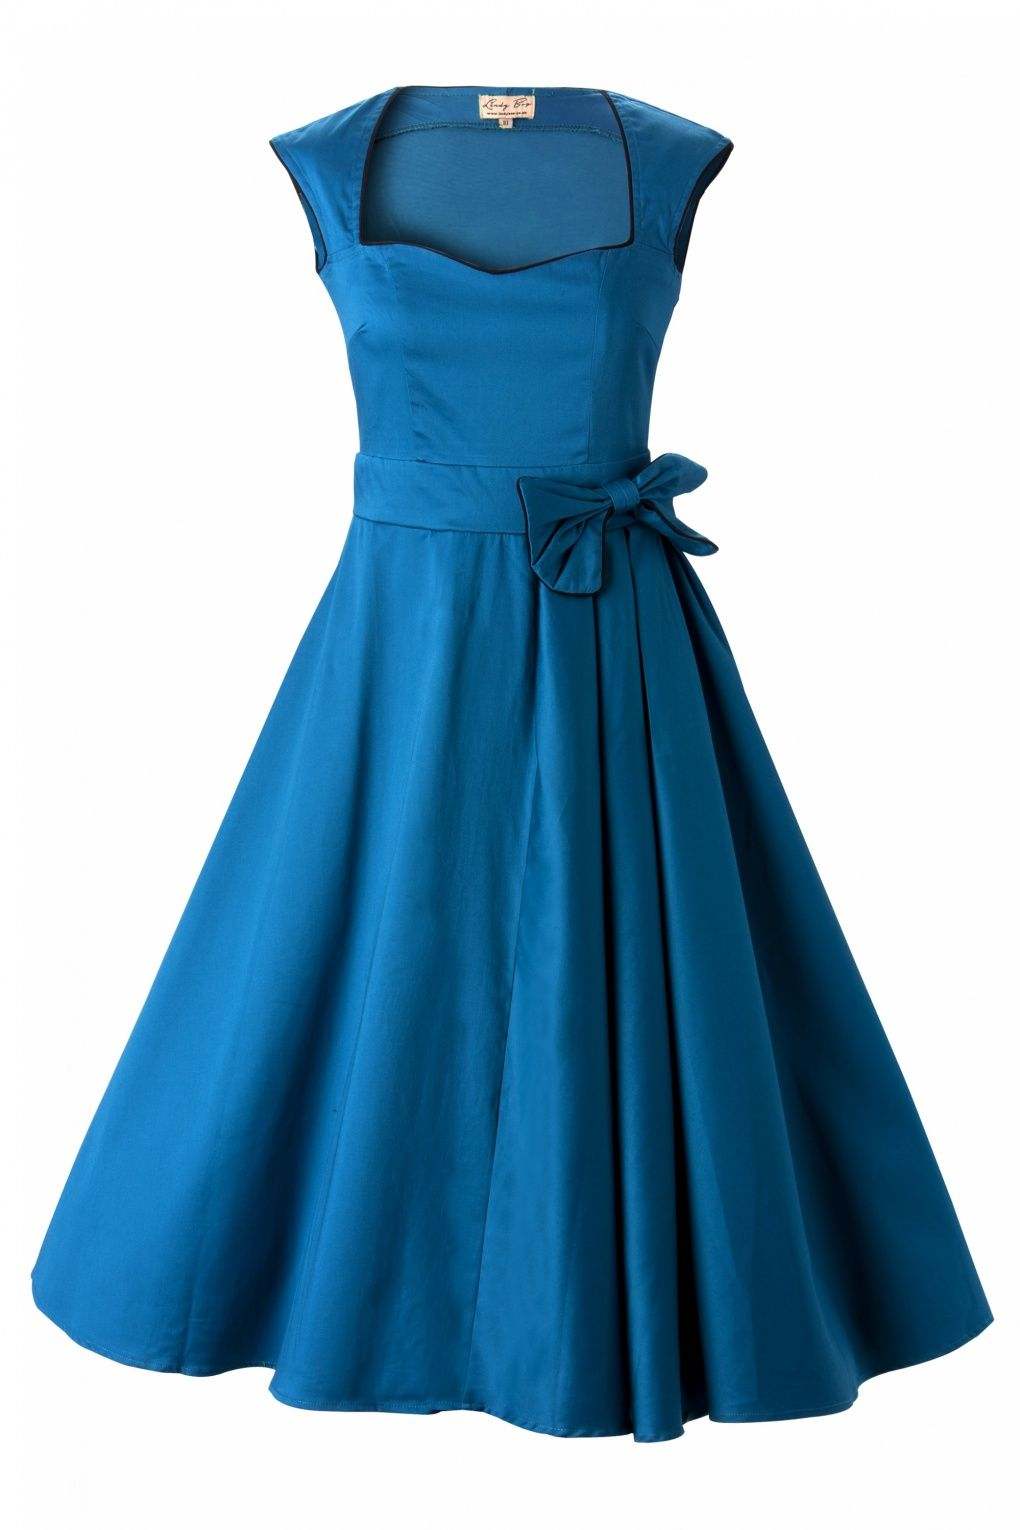 Us grace blue bow vintage style swing party rockabilly e